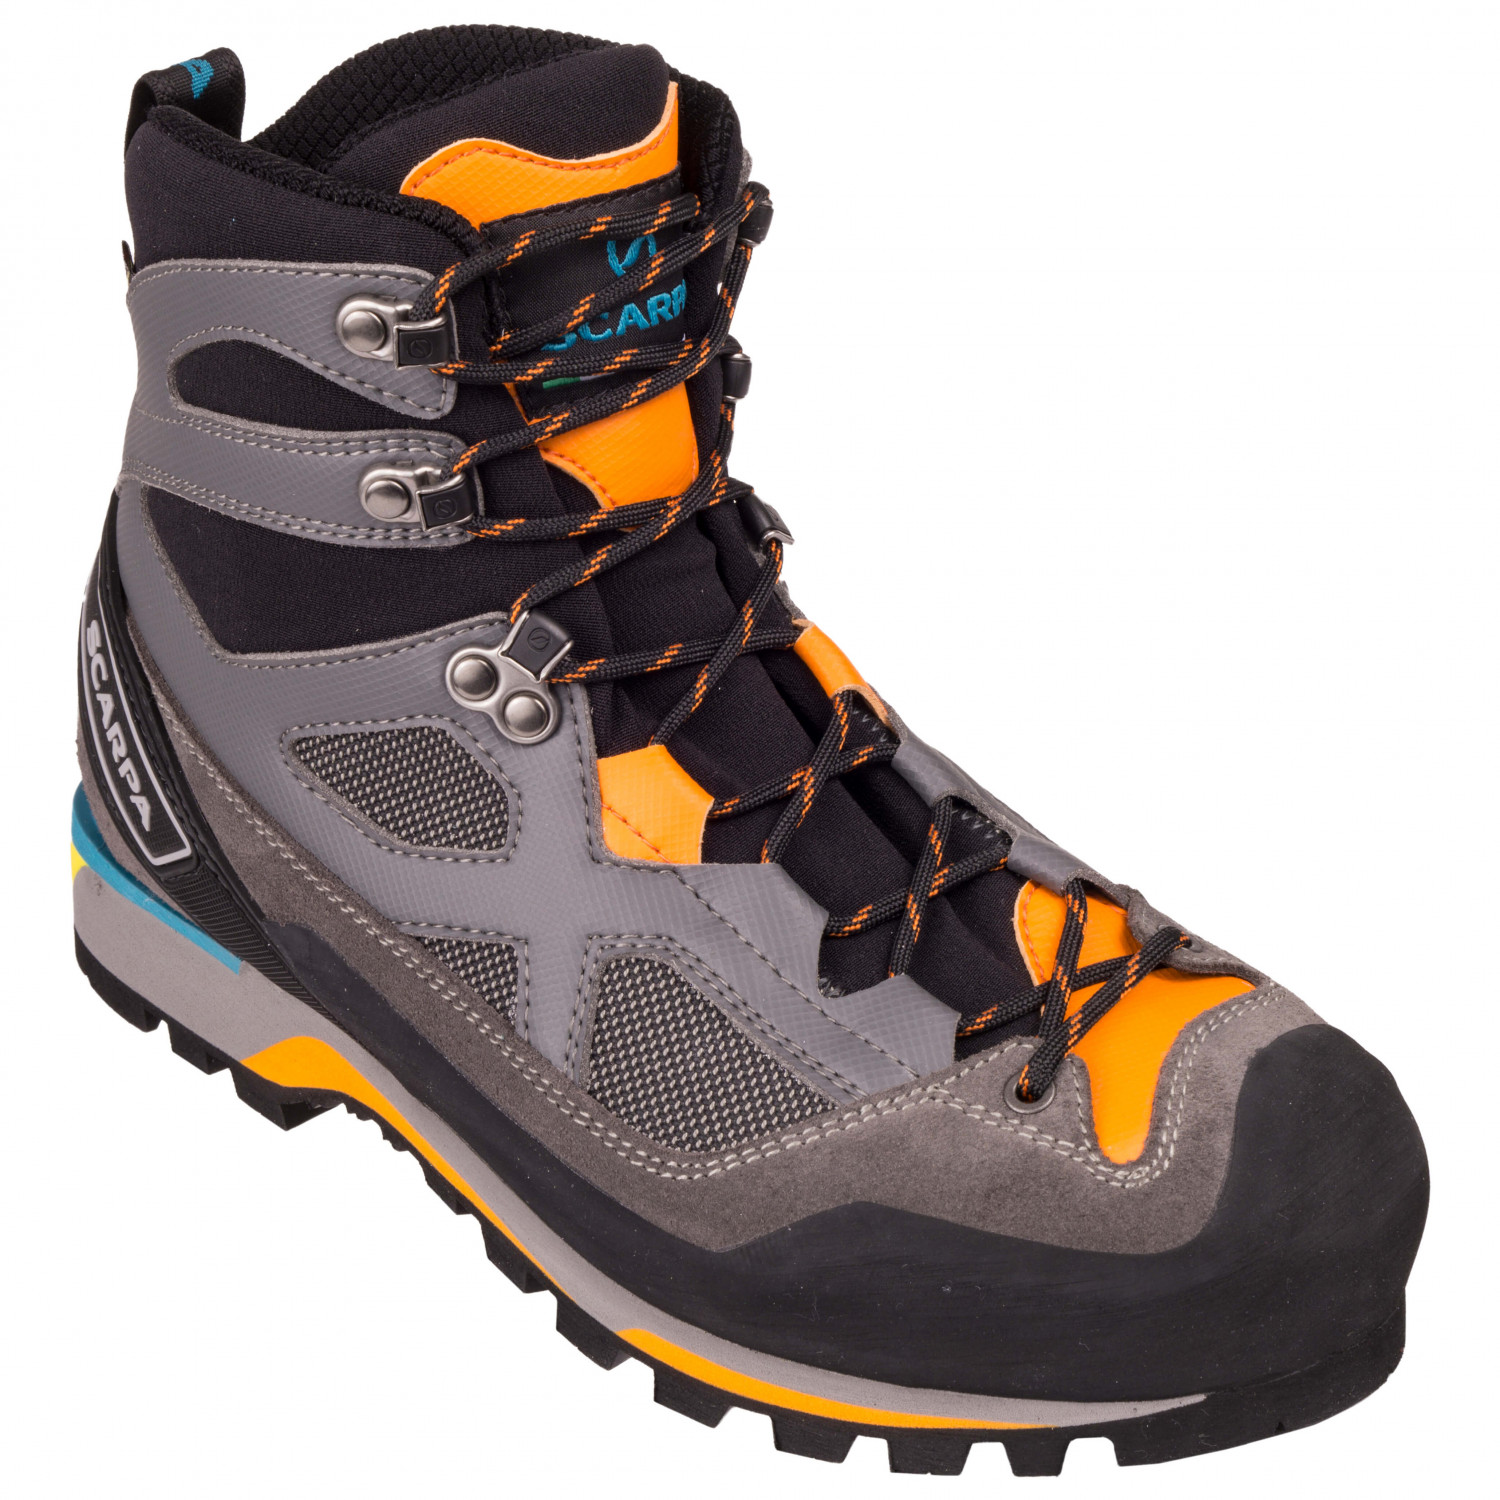 scarpa rebel lite gtx trekking shoes men 39 s free uk. Black Bedroom Furniture Sets. Home Design Ideas